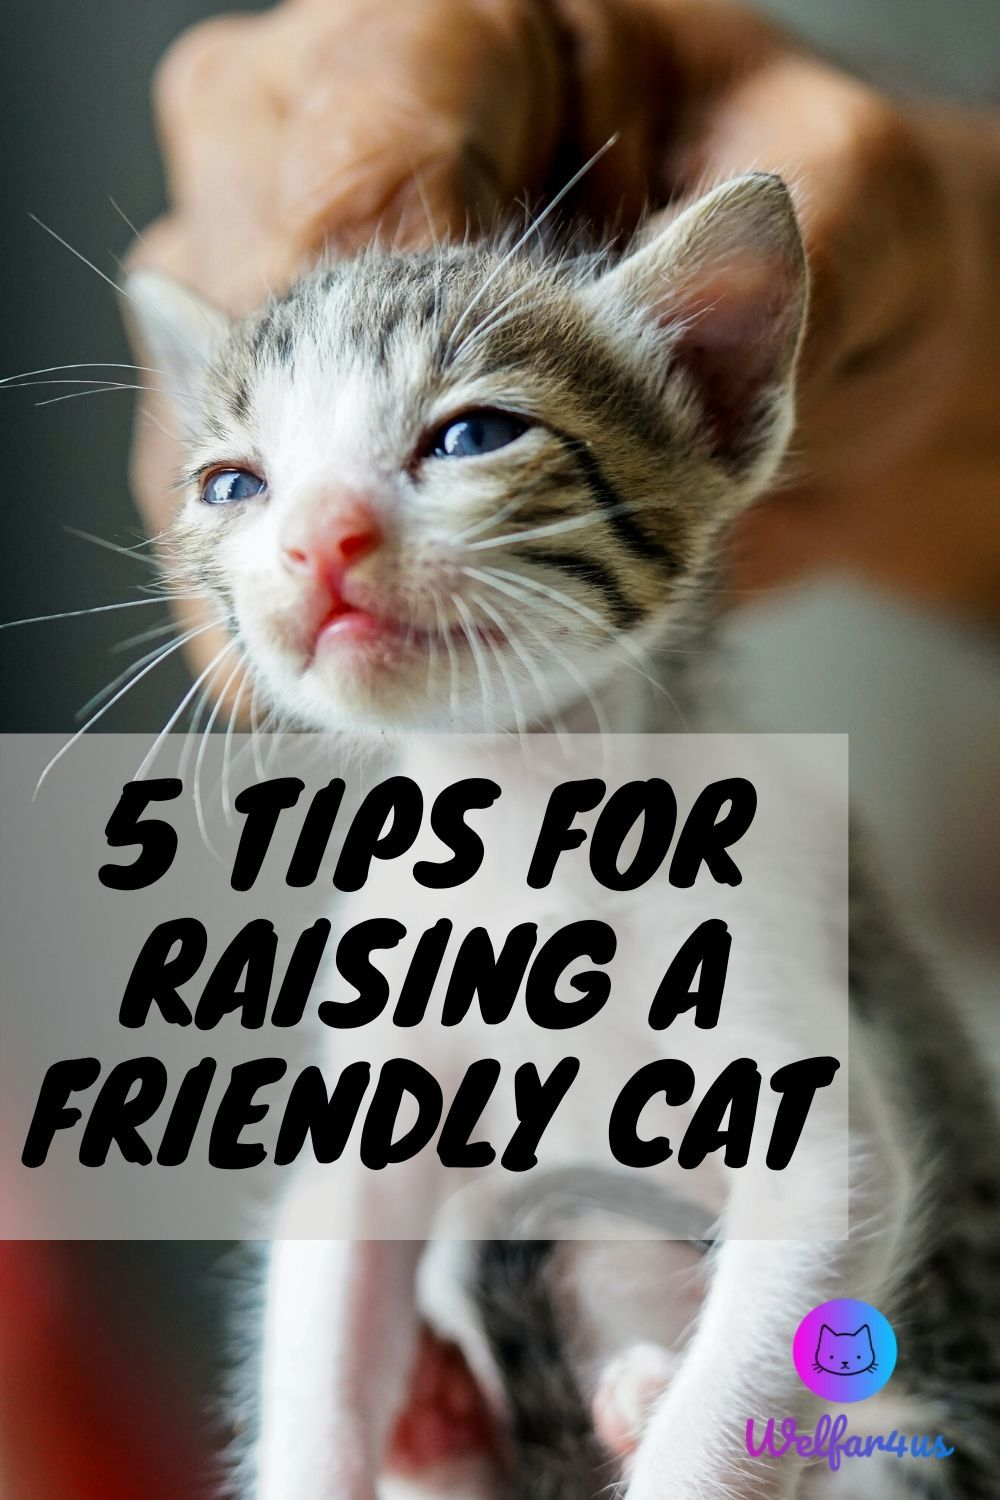 5 Tips For Raising A Friendly Cat Welfar4us In 2020 Cats Cute Cats And Dogs Cute Cats And Kittens